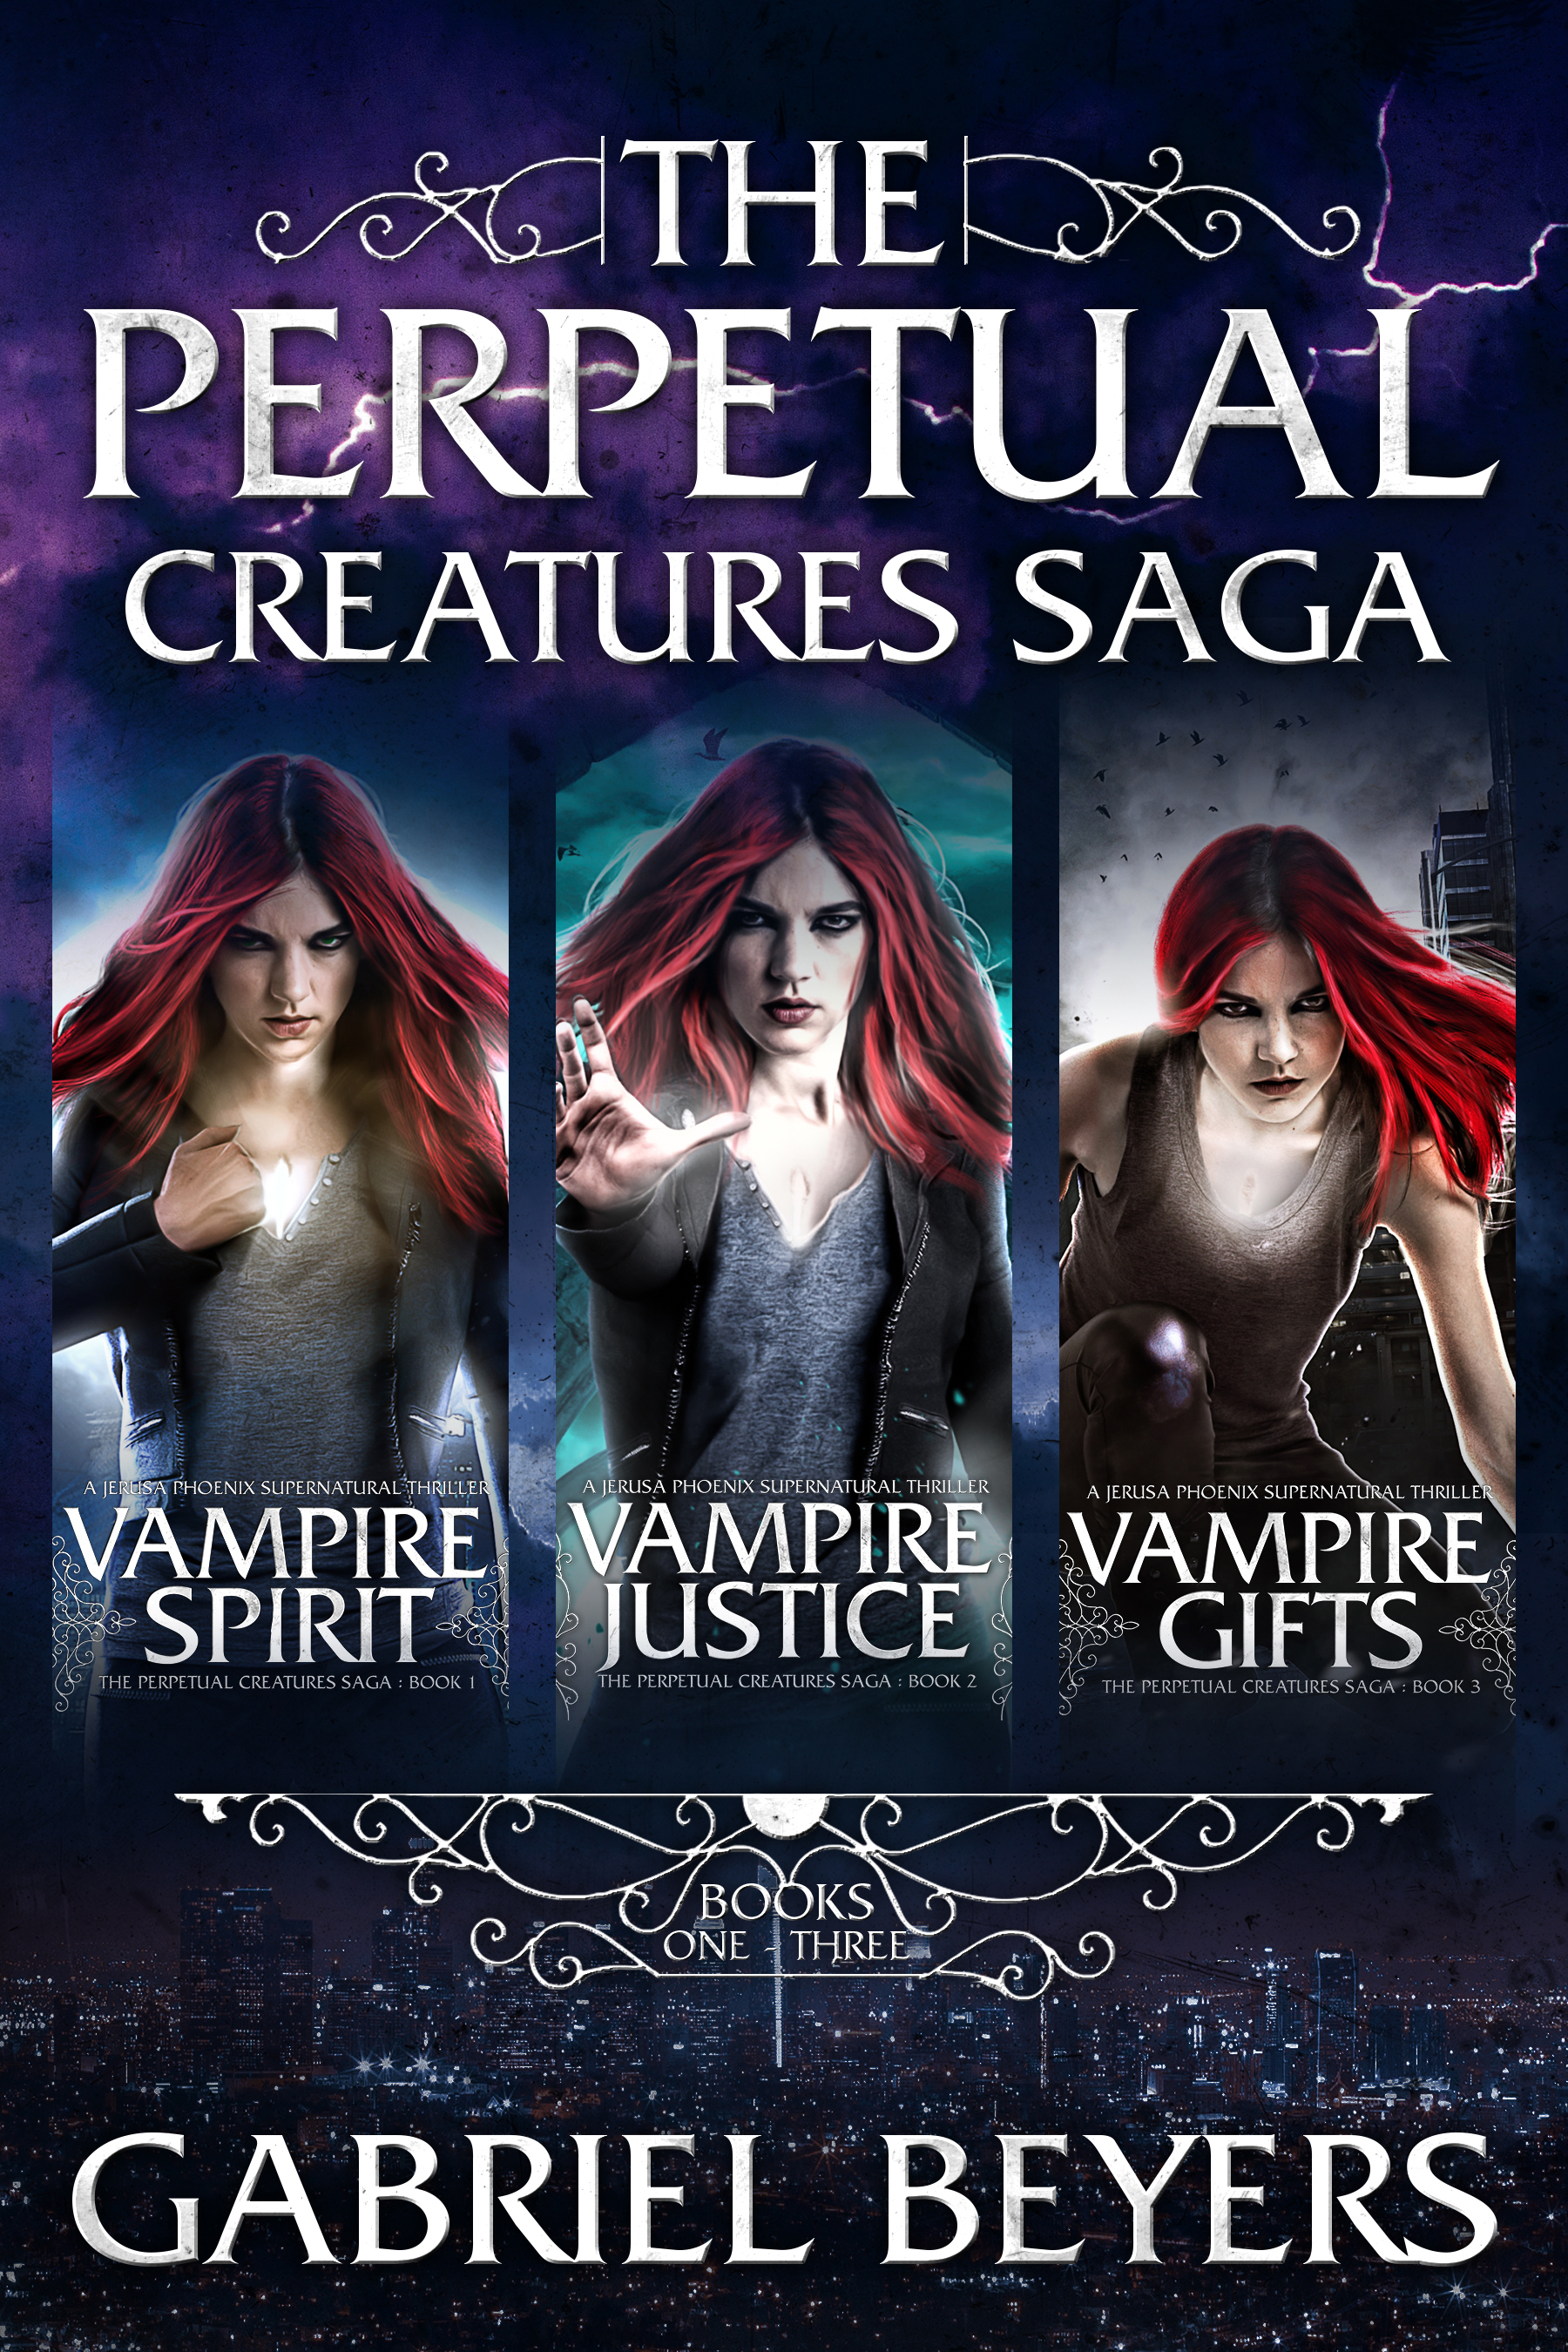 The Perpetual Creatures Saga Boxset: Books 1-3